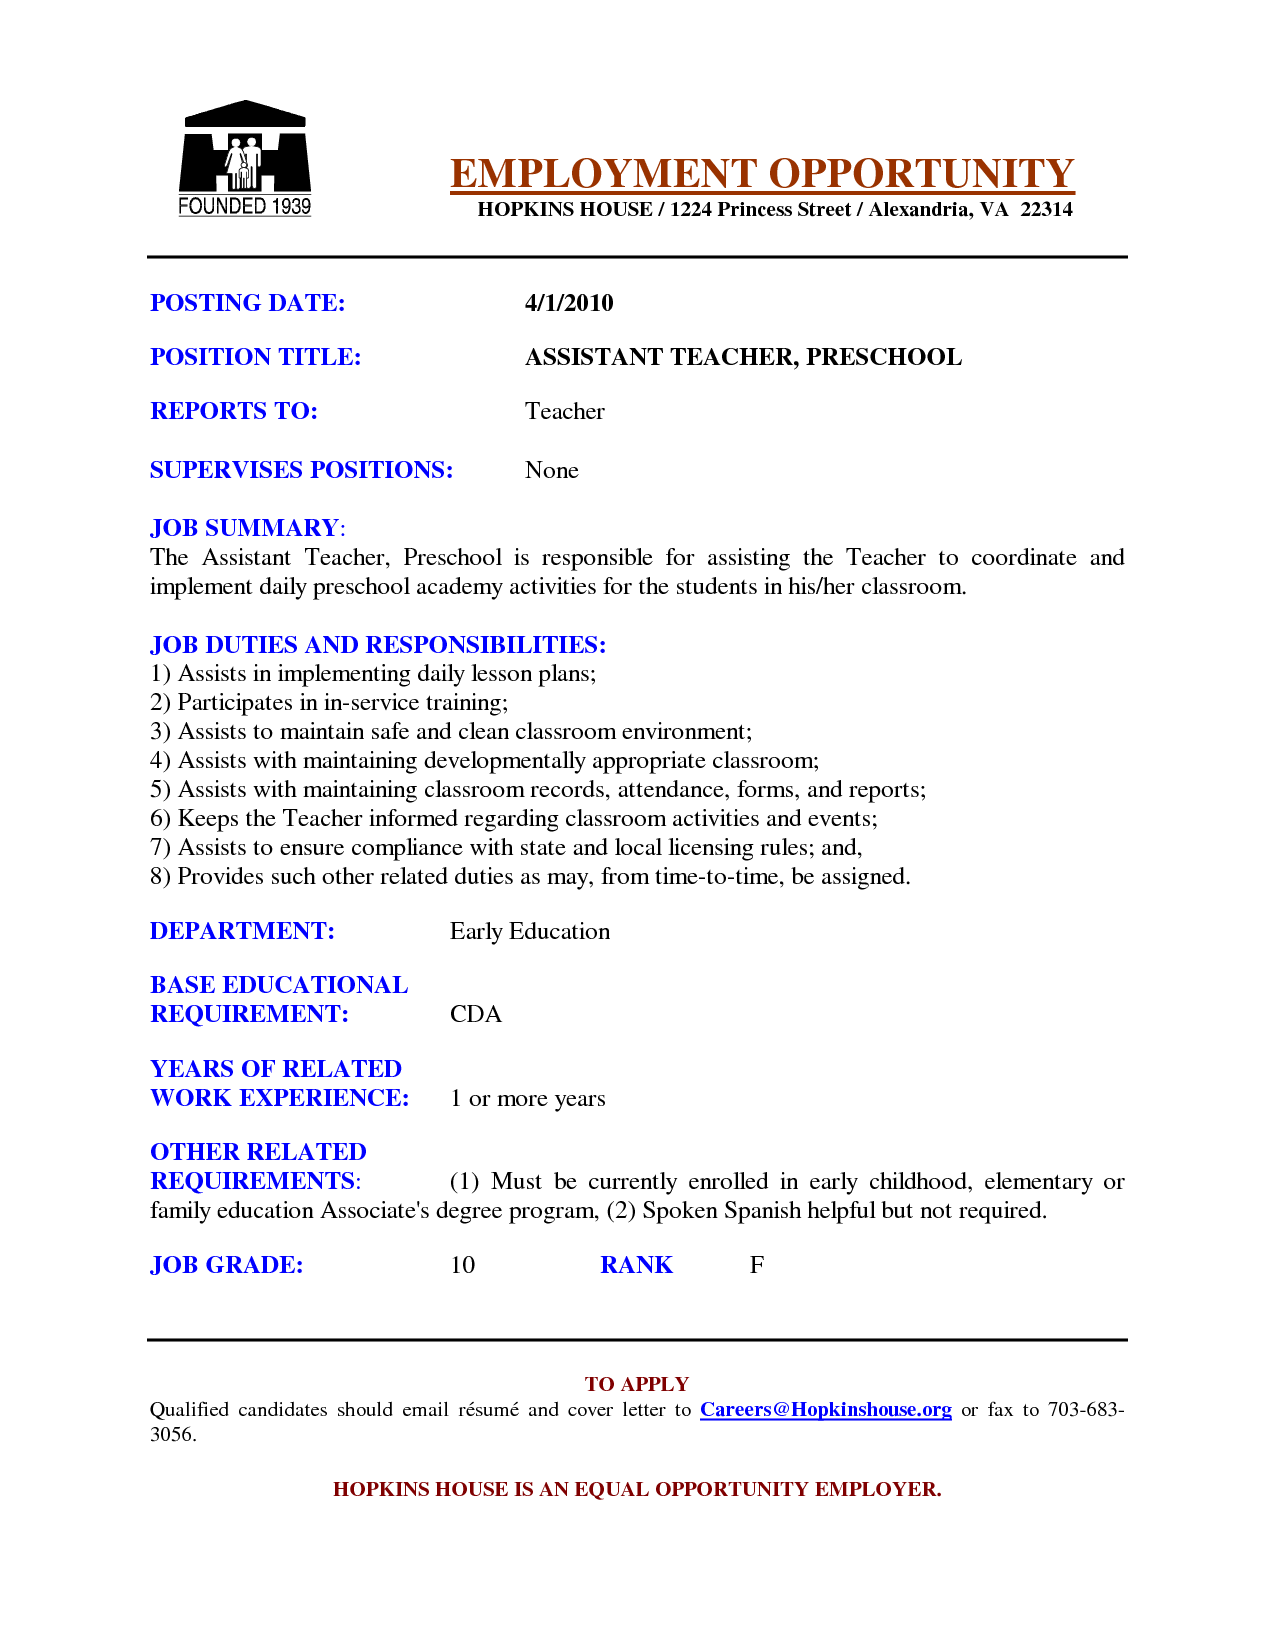 preschool assistant teacher resume examples google search - Examples Of Teacher Assistant Resumes